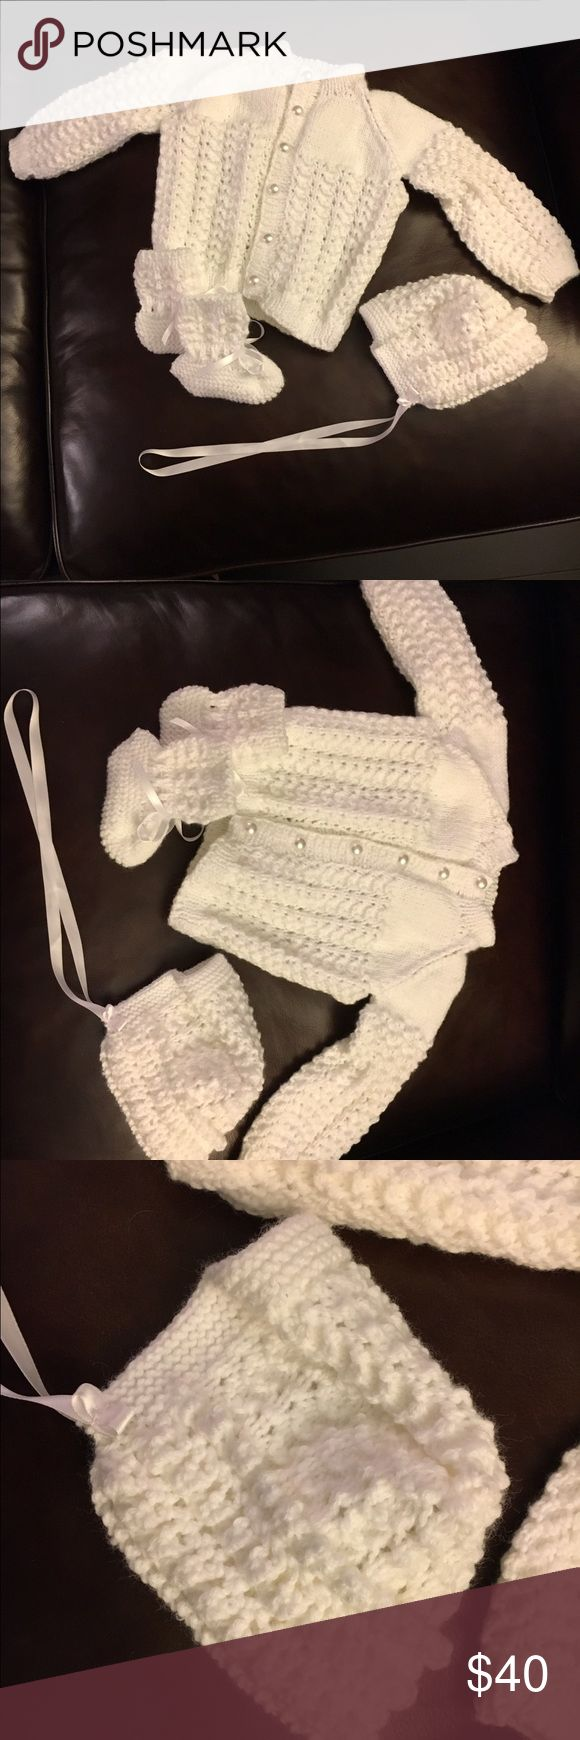 Brand new handmade crochet knit baby Sweater set Handmade white crochet knit baby sweater set. Matching Sets